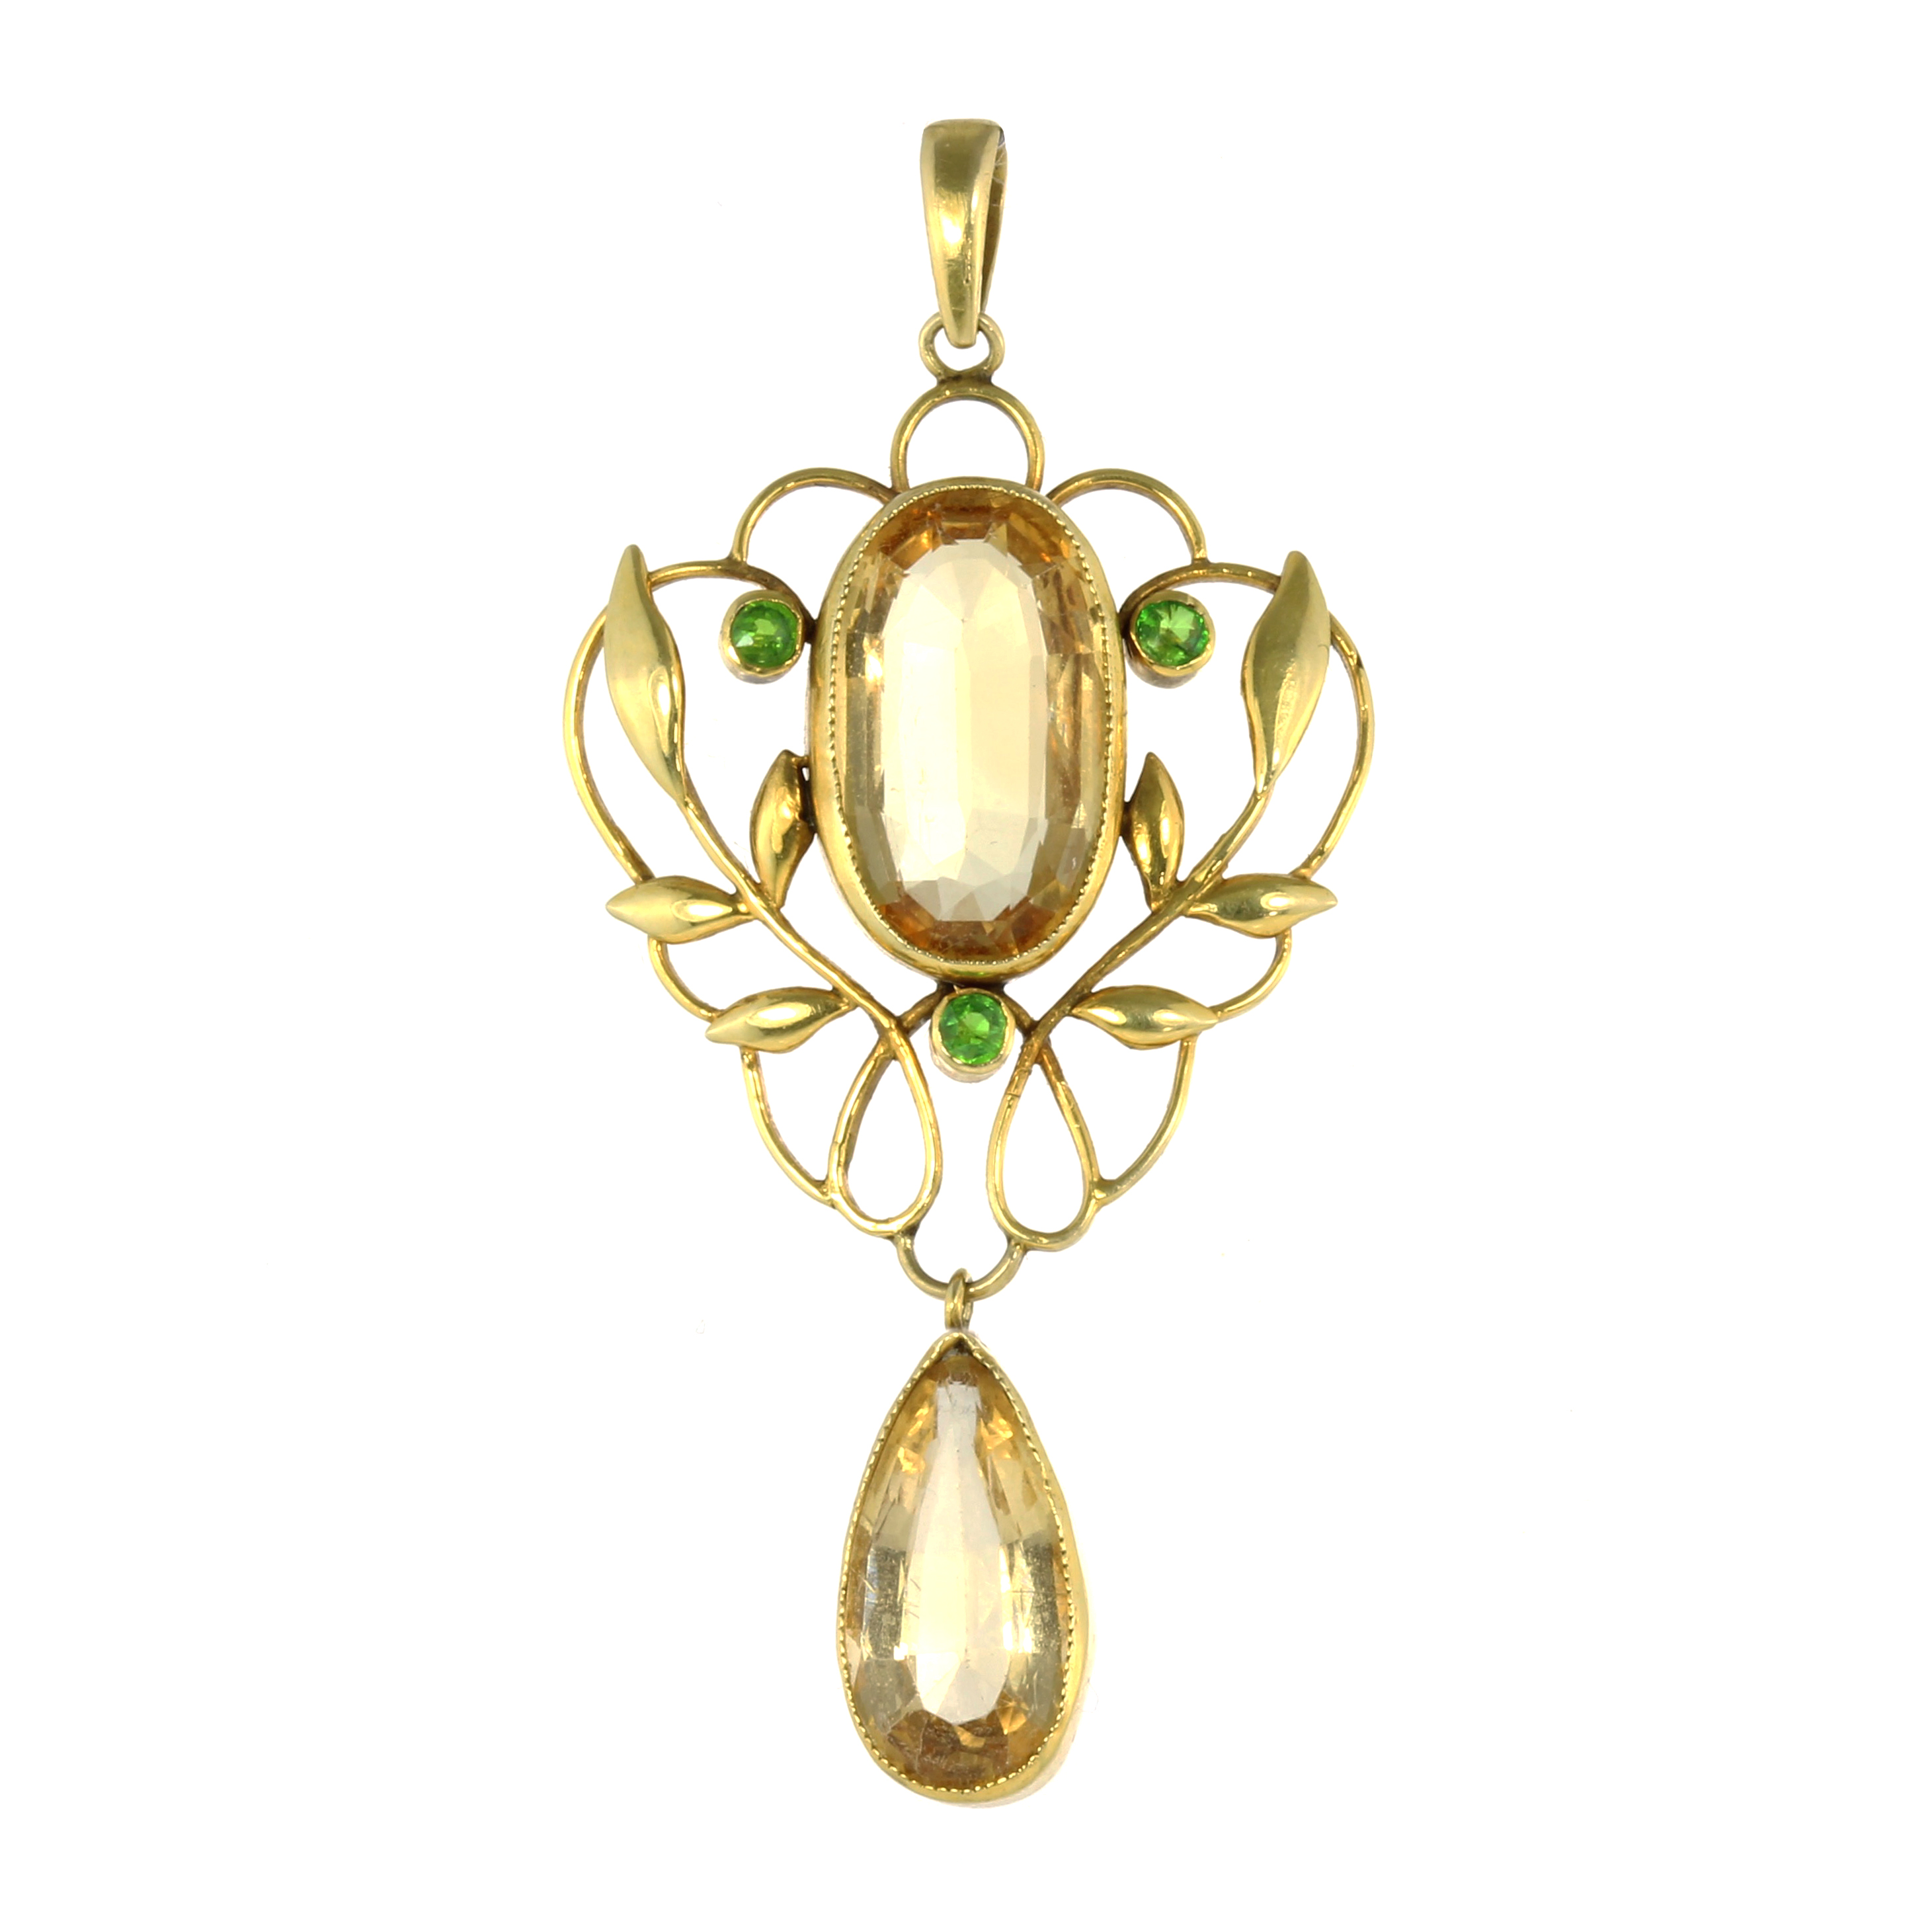 Los 28 - AN ART NOUVEAU IMPERIAL TOPAZ AND DEMANTOID GARNET PENDANT set with a central oval cut topaz of 4.43